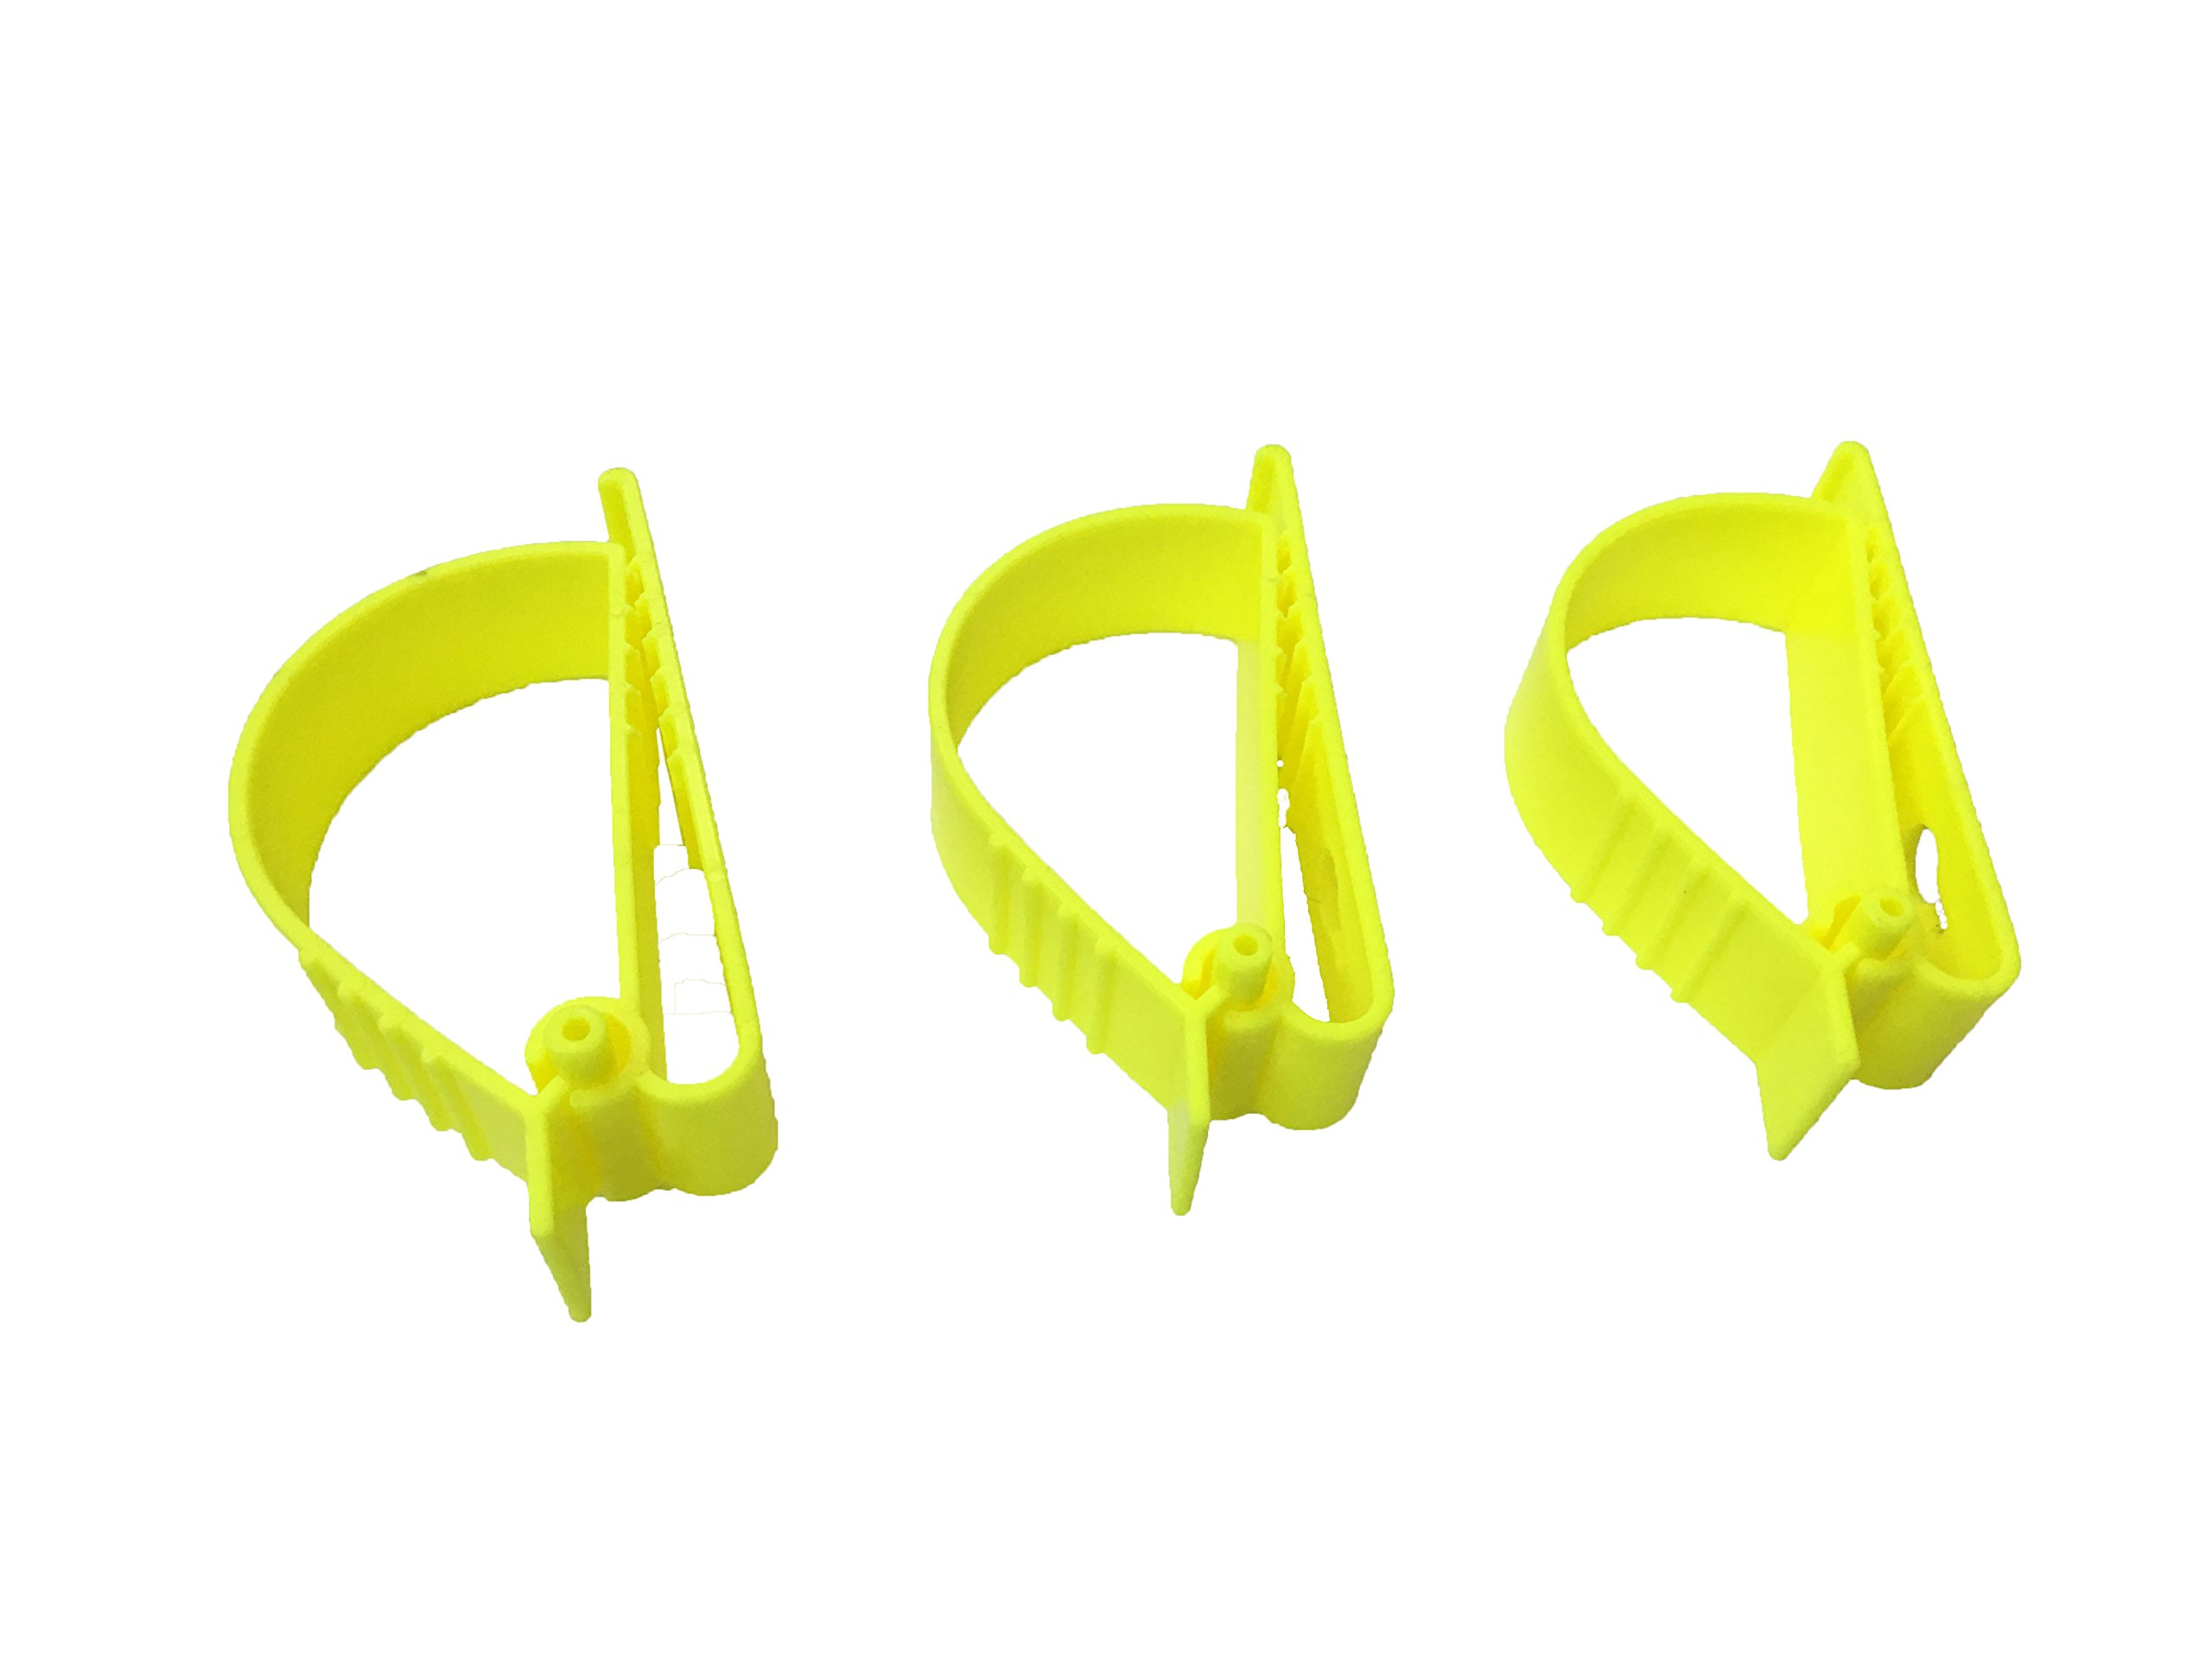 3Pcs Yellow Sino-Max S002-3Y Glove Grabber Clip Holder Guard Work Safety Clip Glove Keeper Safety Clips for Helmet, Earmuff, Mask, Cable, Cord, Rope Hunging in Hook Belt Clip